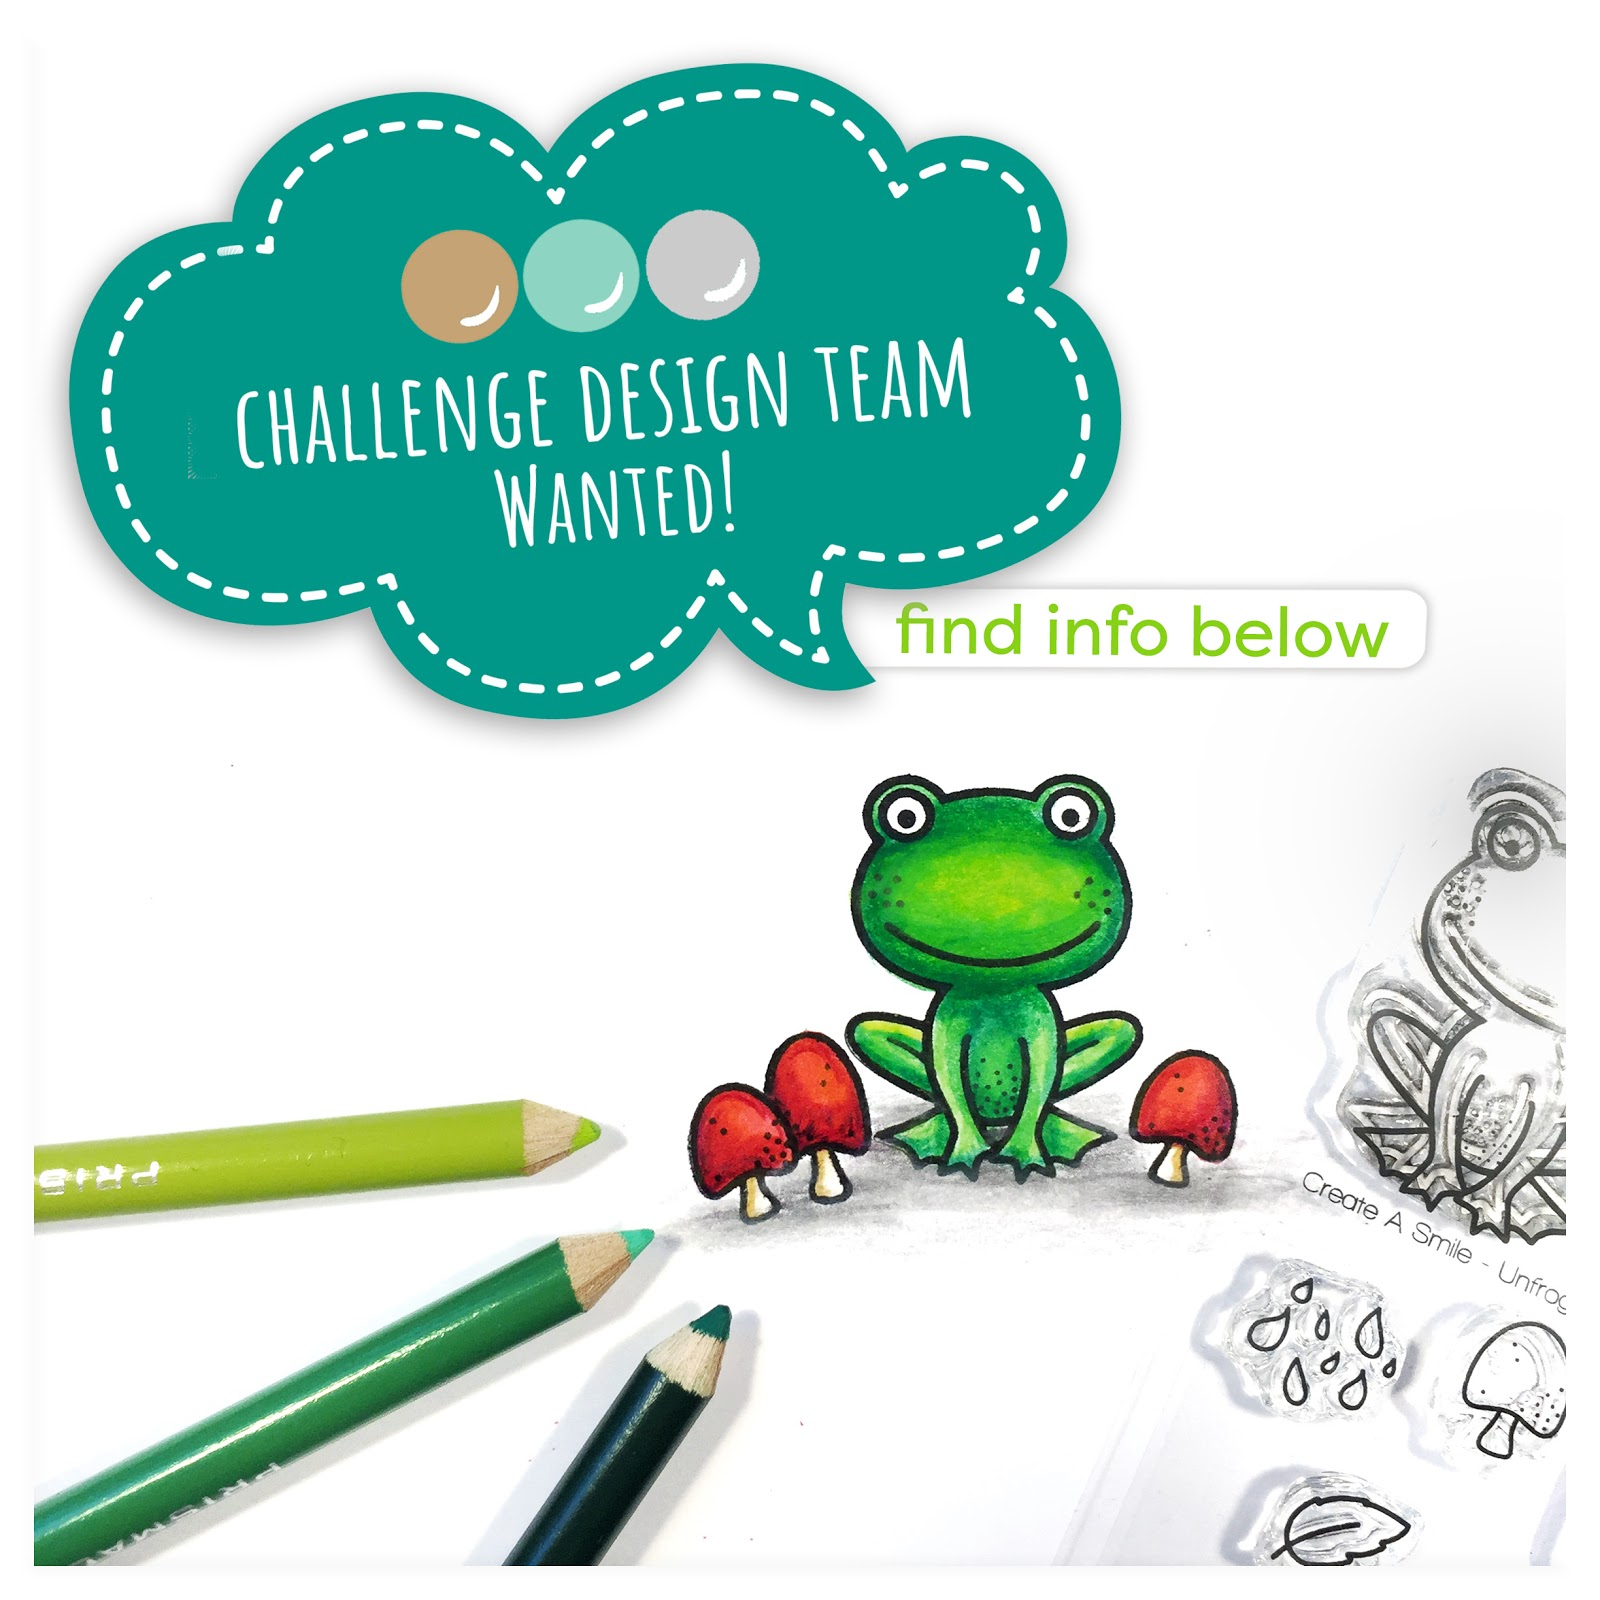 Challenge design team call | CREATE A SMILE